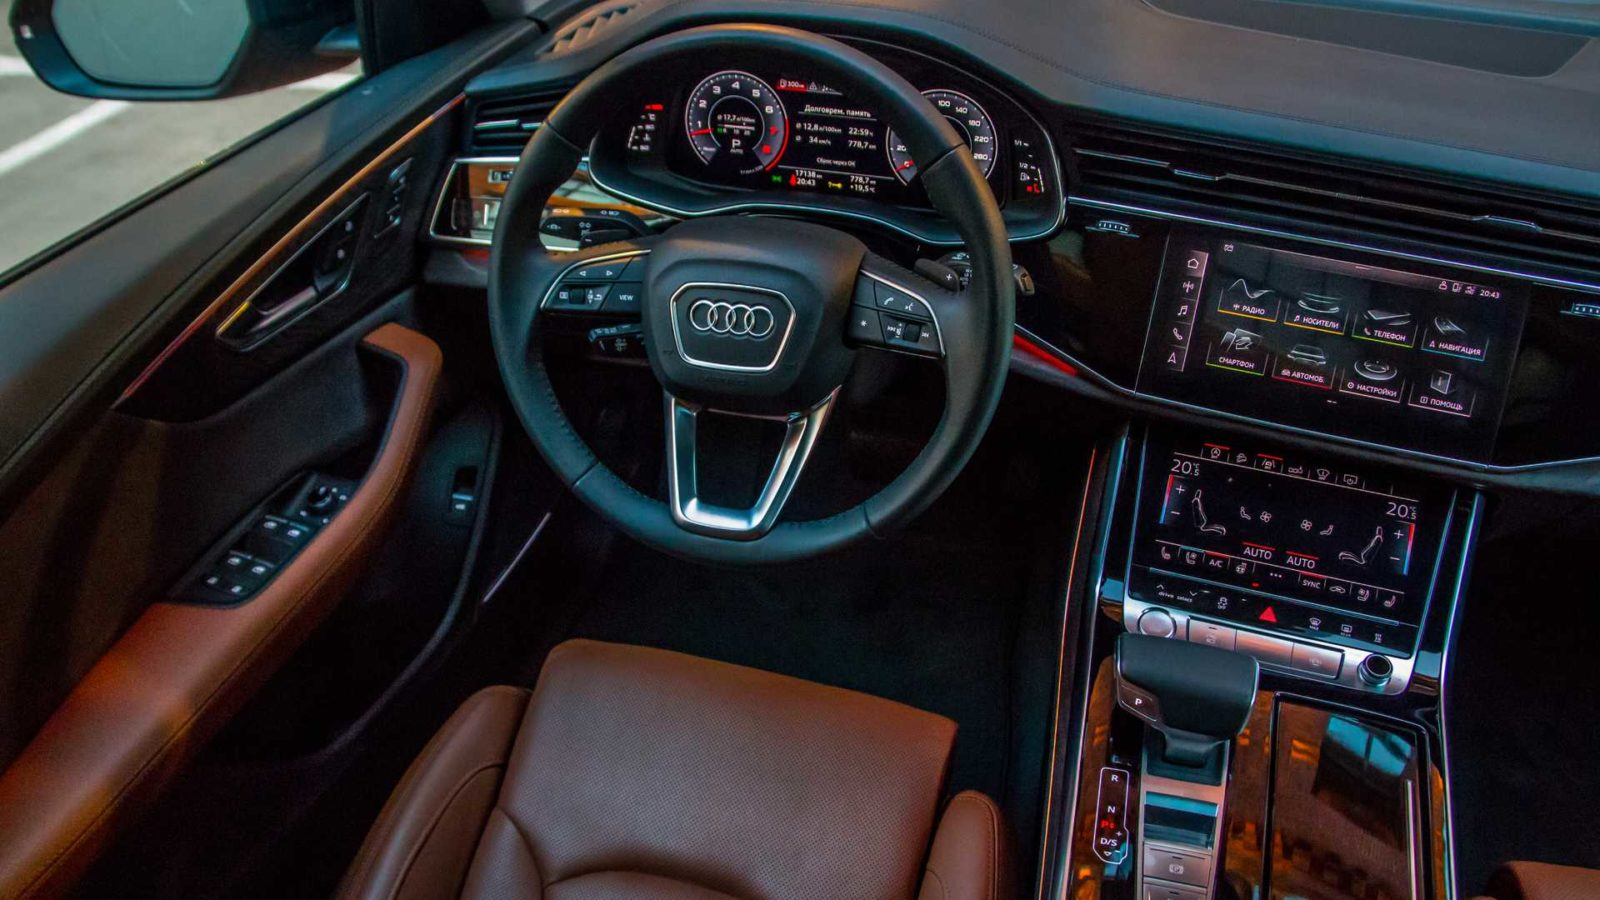 2020 Audi Q8 foto, inter'er, salon, tehnicheskie harakteristiki, cena, data vyhoda — video